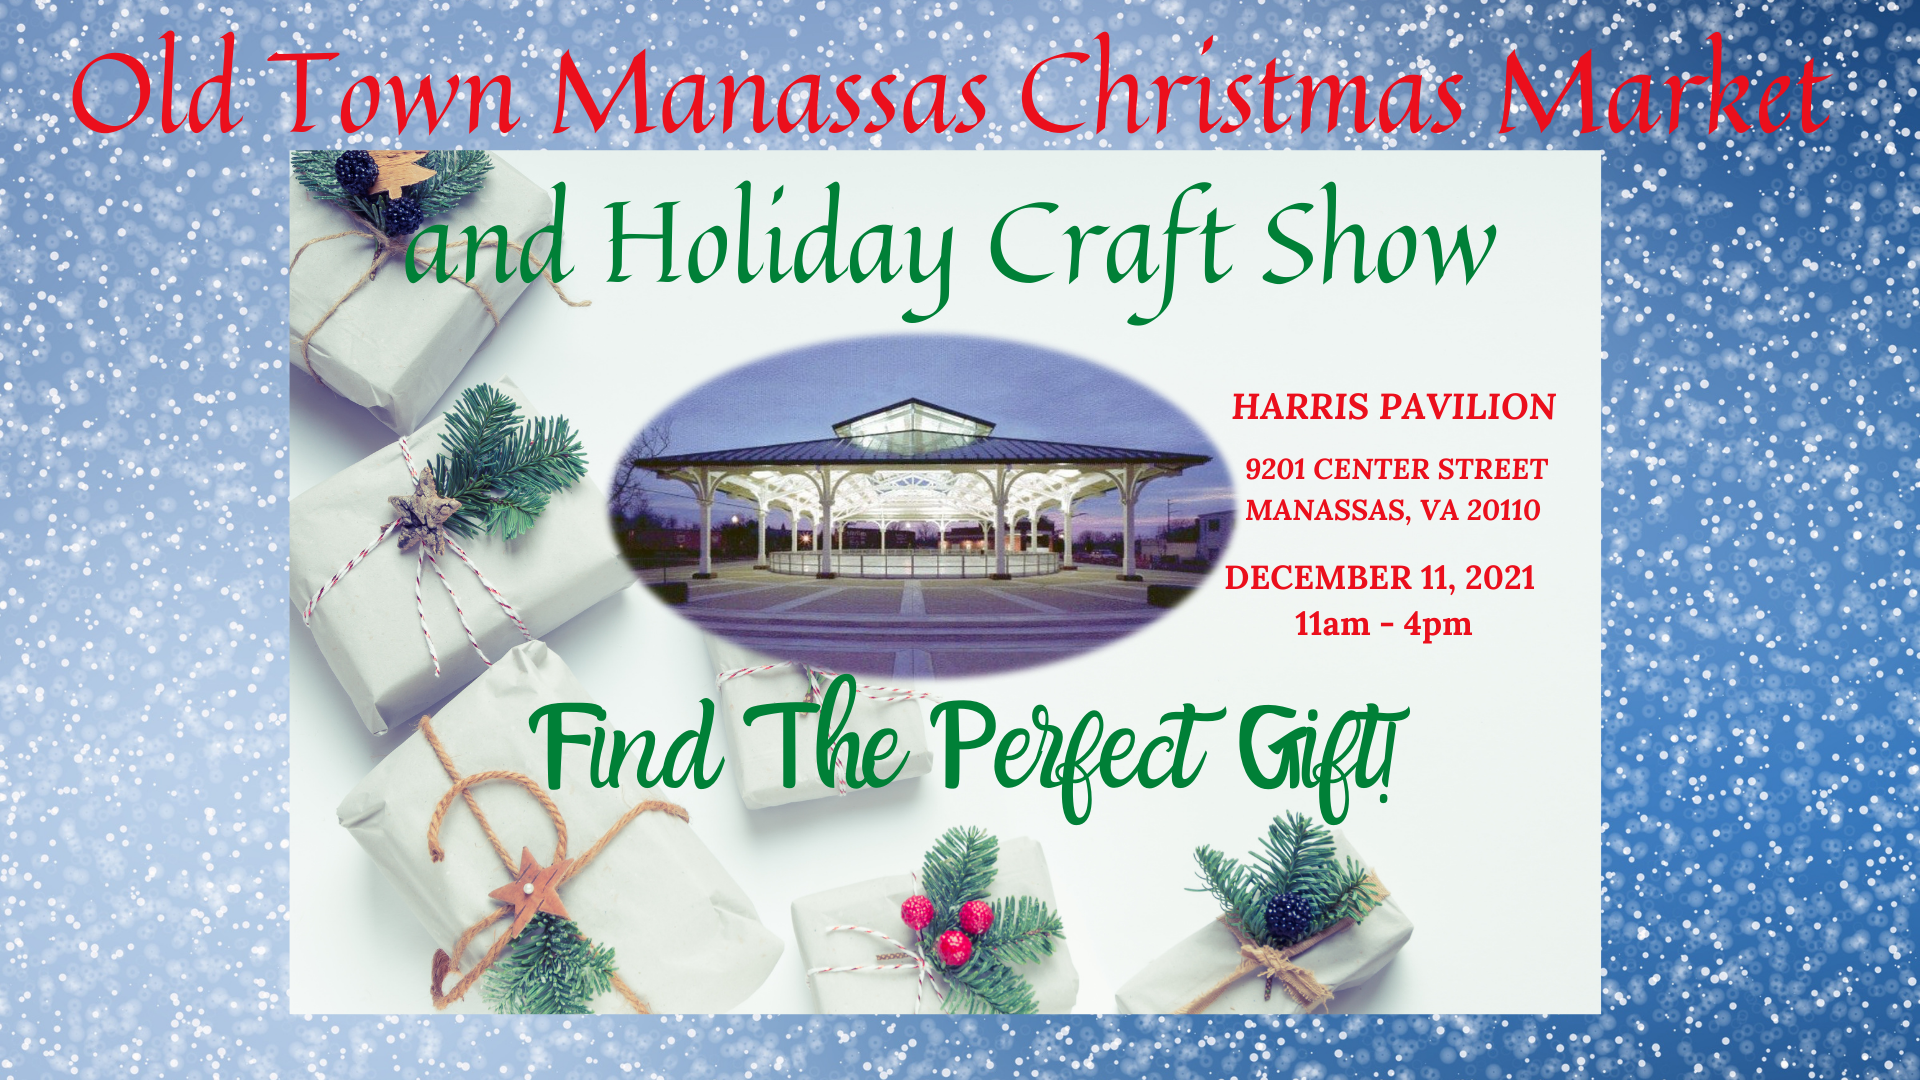 Christmas Markets Virginia 2021 Old Town Manassas Christmas Market And Holiday Craft Show Harris Pavilion Food Drink Style Weekly Richmond Va Local News Arts And Events